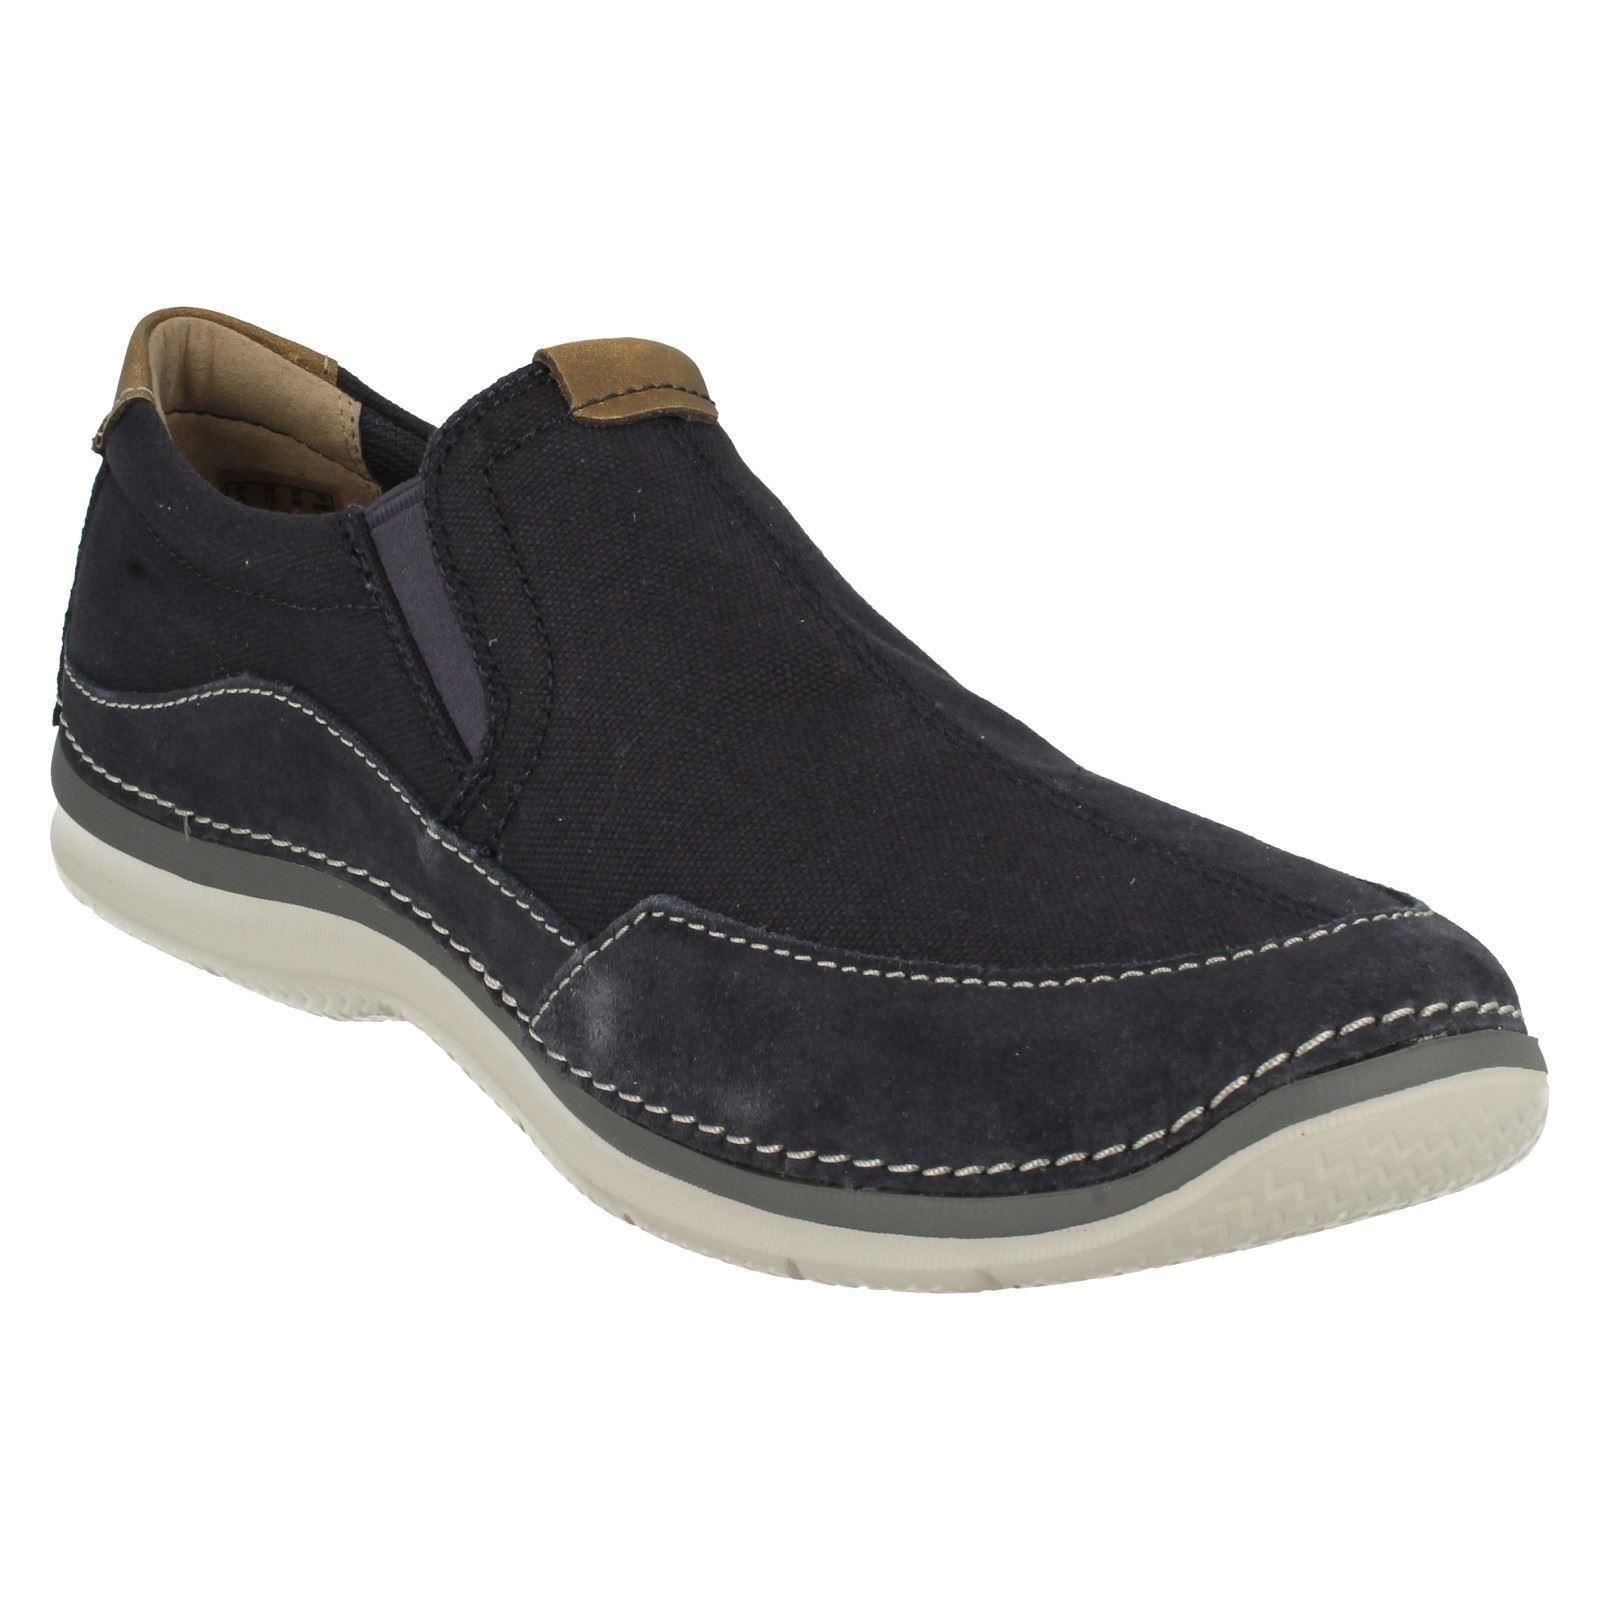 Mens-Clarks-Casual-Shoes-039-Ripton-Free-039